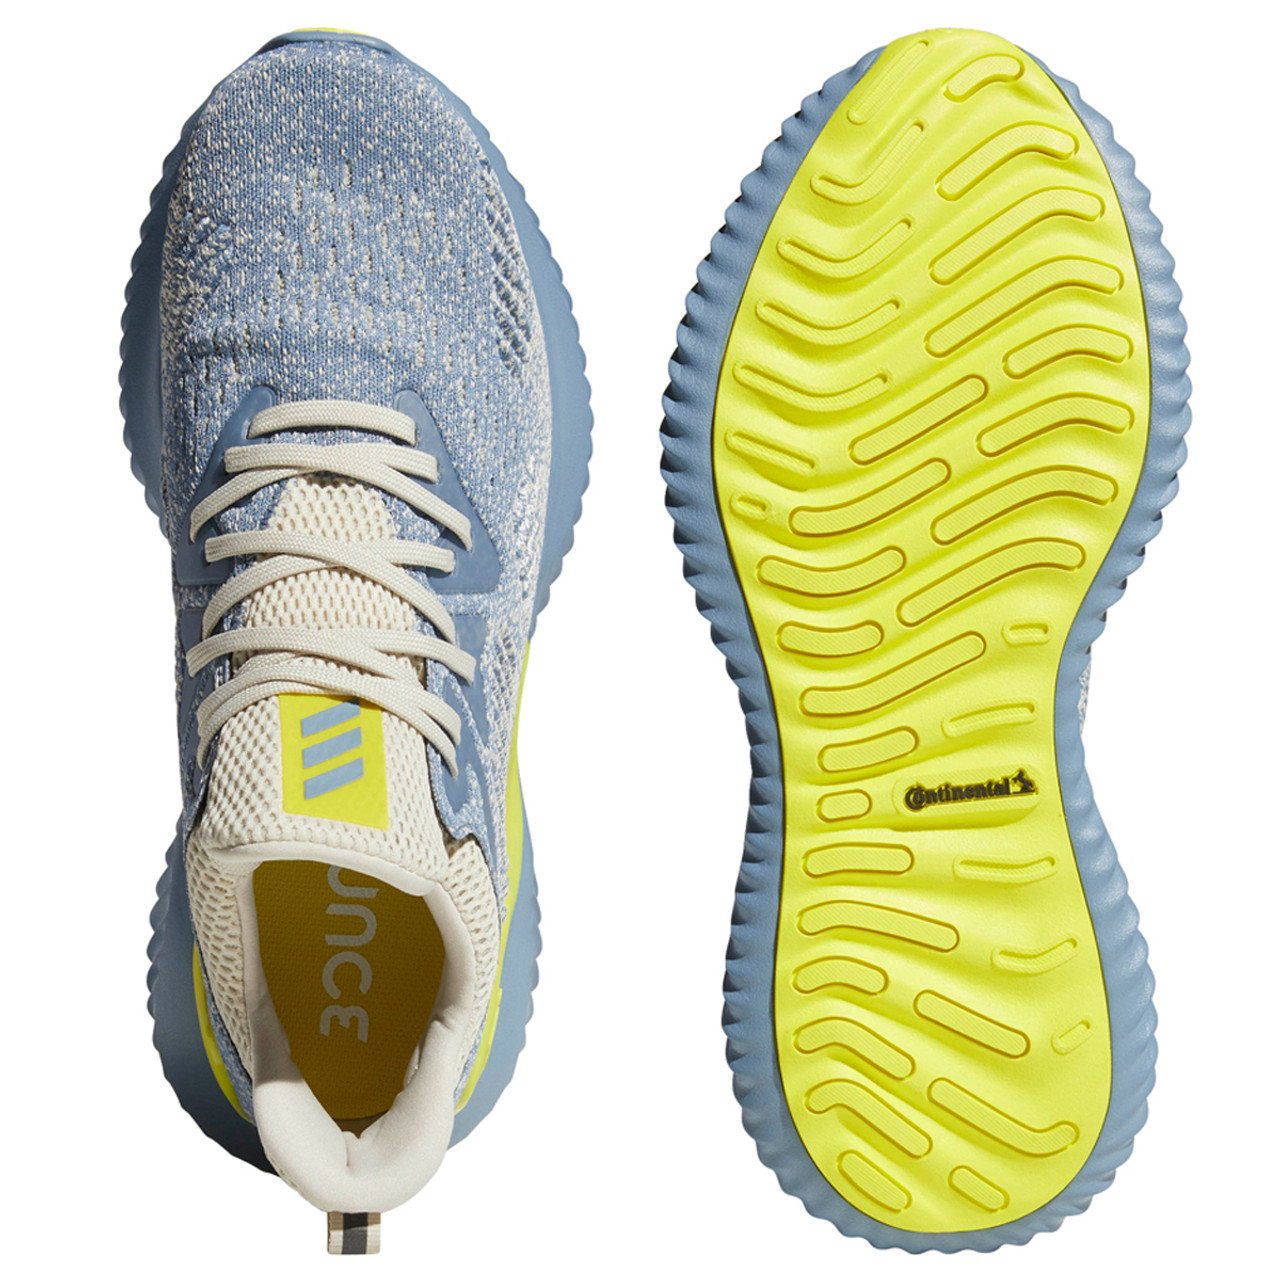 low priced e3ec1 c7da3 adidas alphabounce beyond teal mens running shoe main container best .